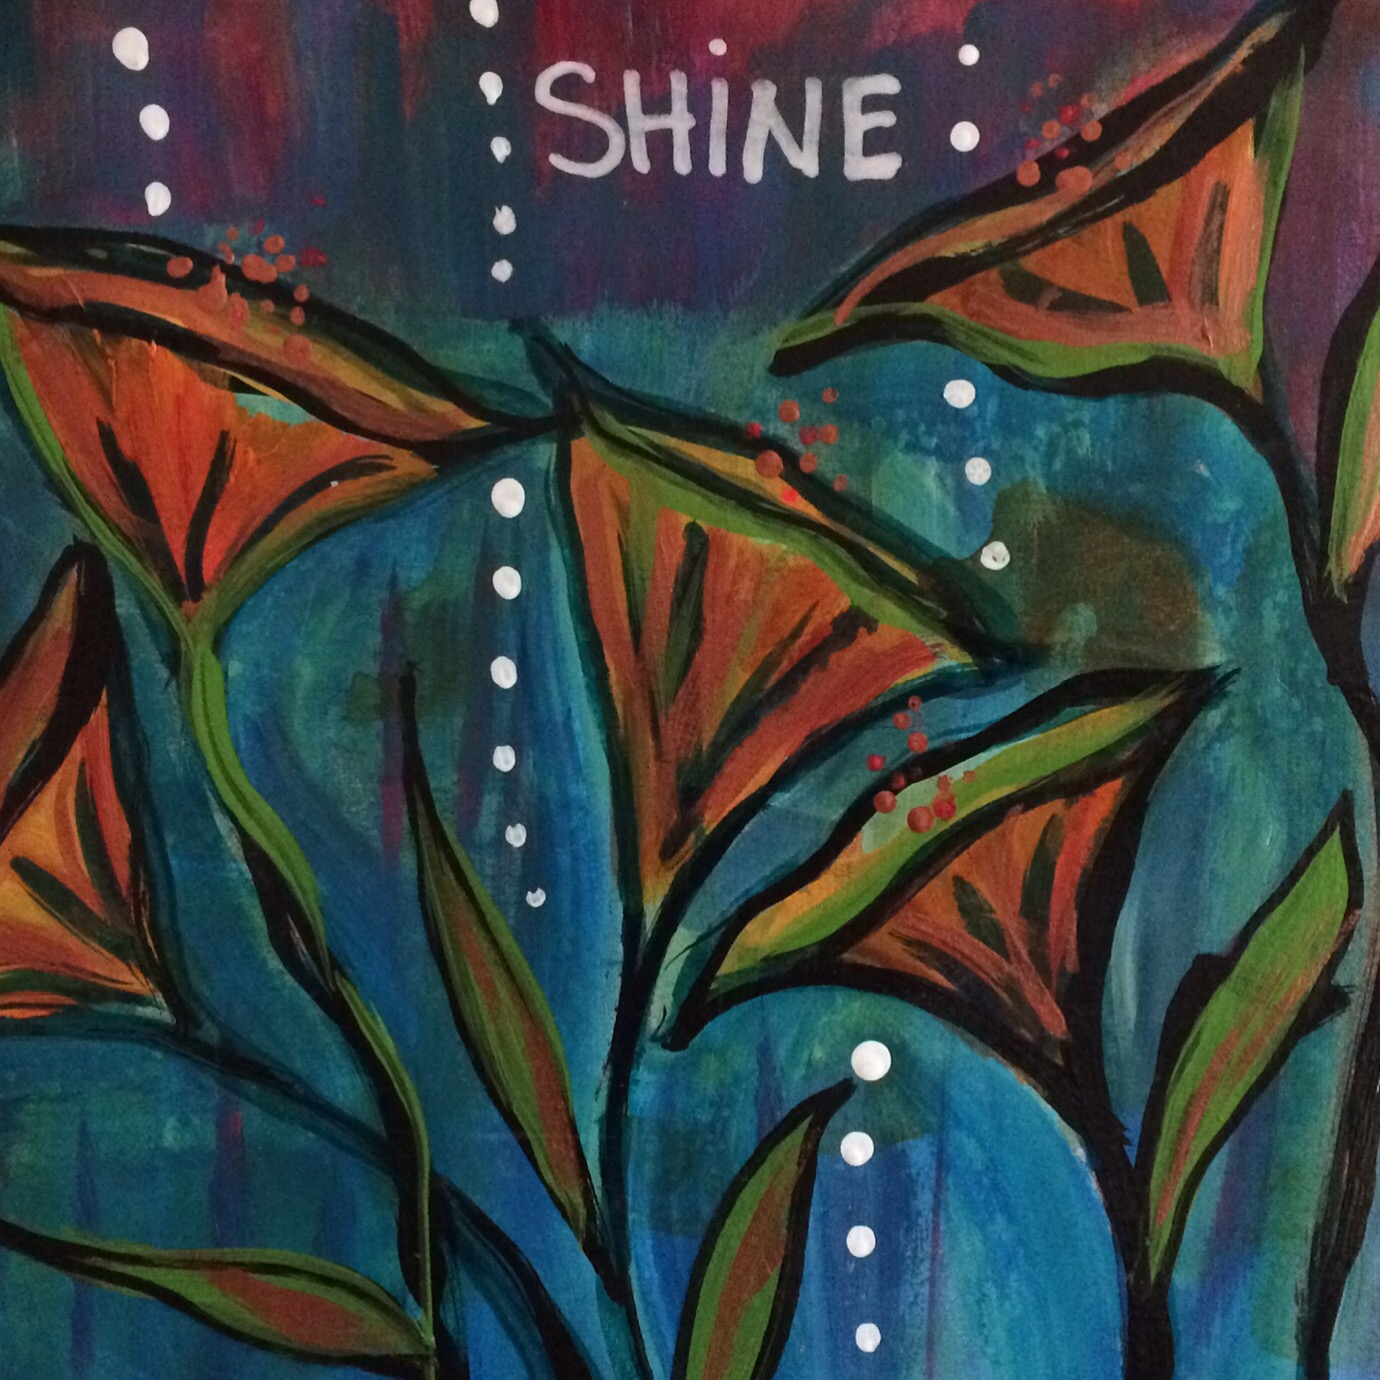 Shine by Nicole Edgecombe